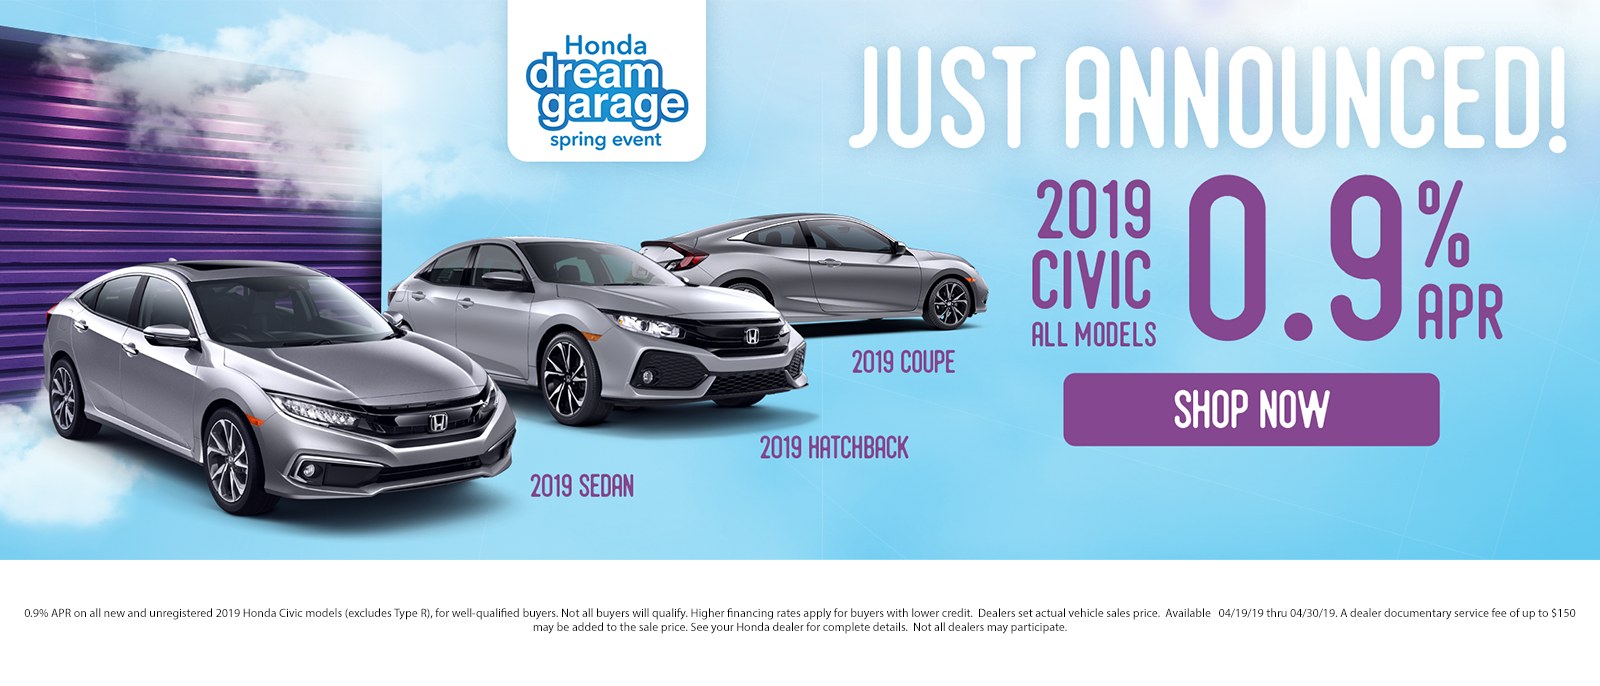 Just Announced 2019 Civic 0.9% APR on ALL Models